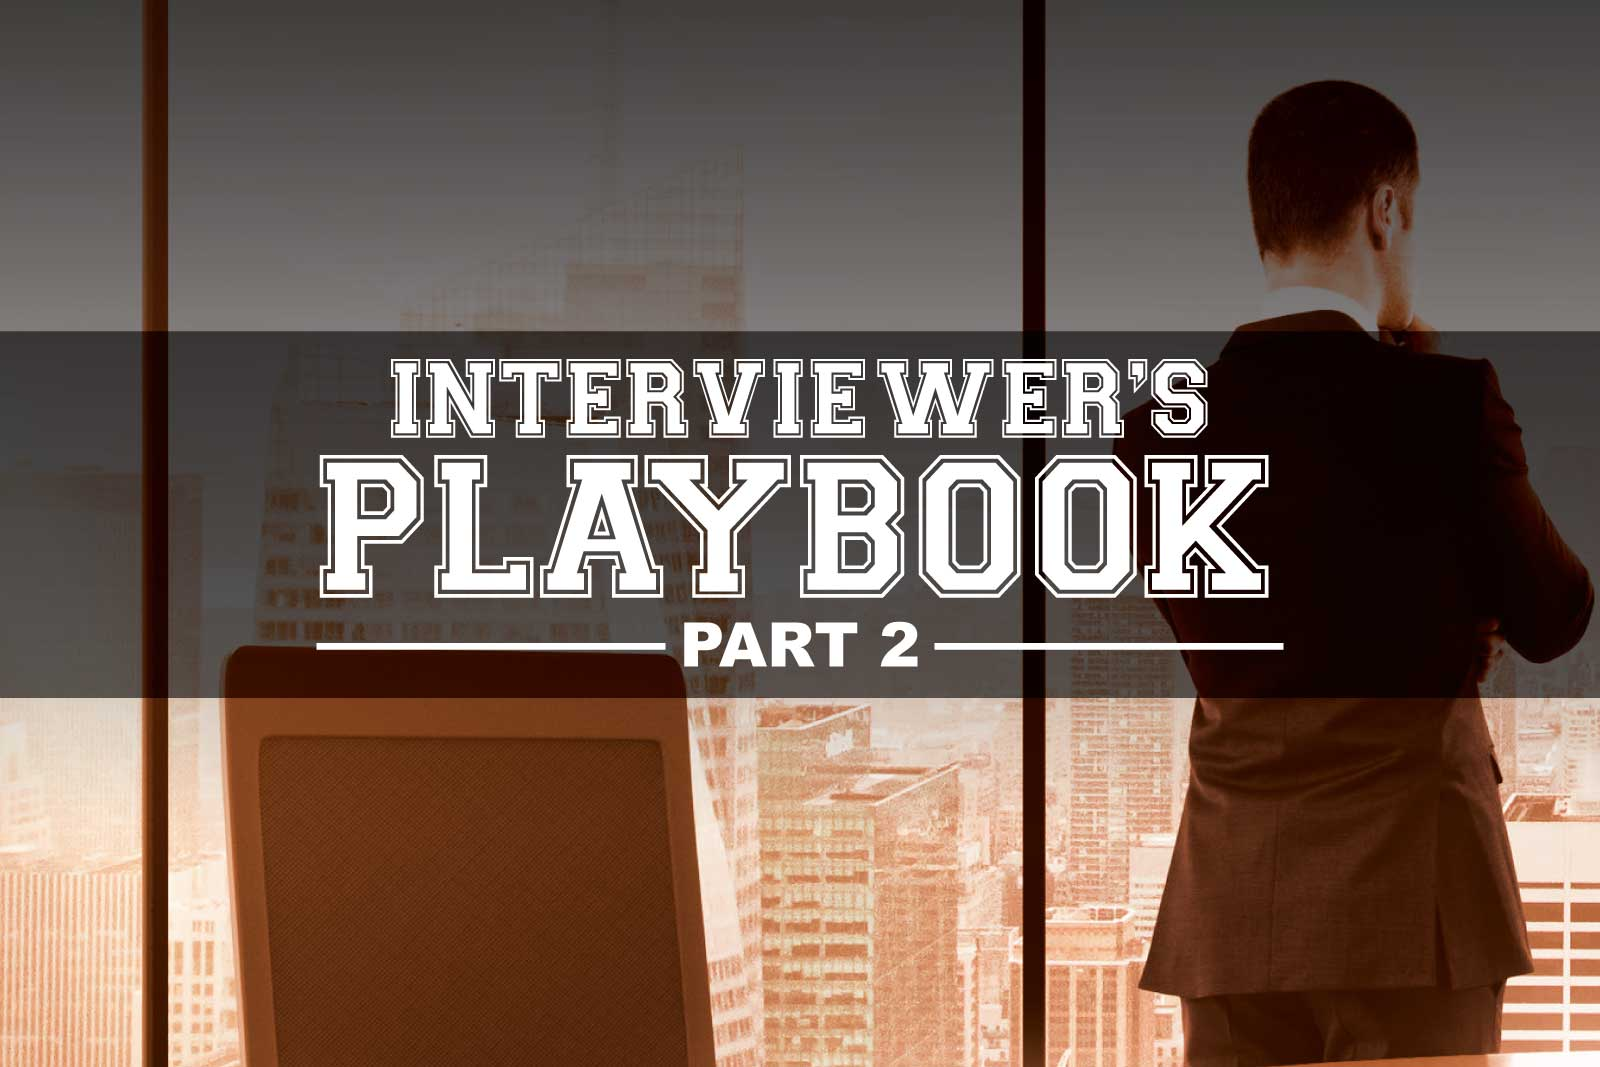 Jon Dwoskin Business Blog: Interviewer's Playbook: 11 Final Tips to Kill It in Every Interview